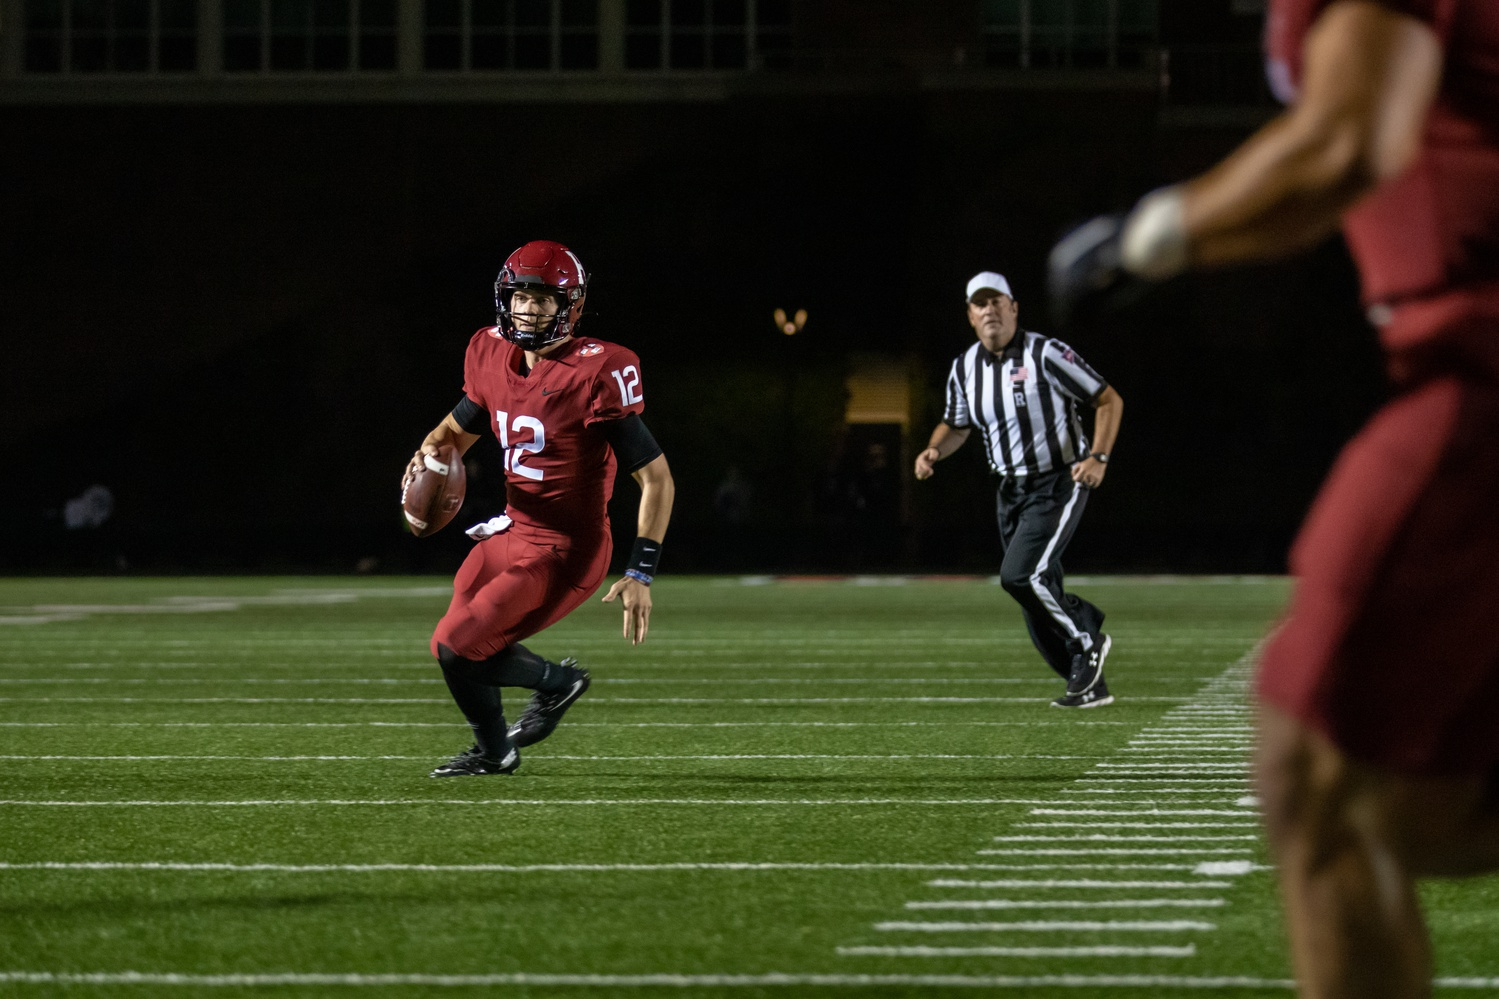 Sophomore quarterback Curt Casteel (#12) also entered the game, rushing once for six yards. Senior QB Jake Smith also made an appearance (#10) with two completions on three passing attempts.